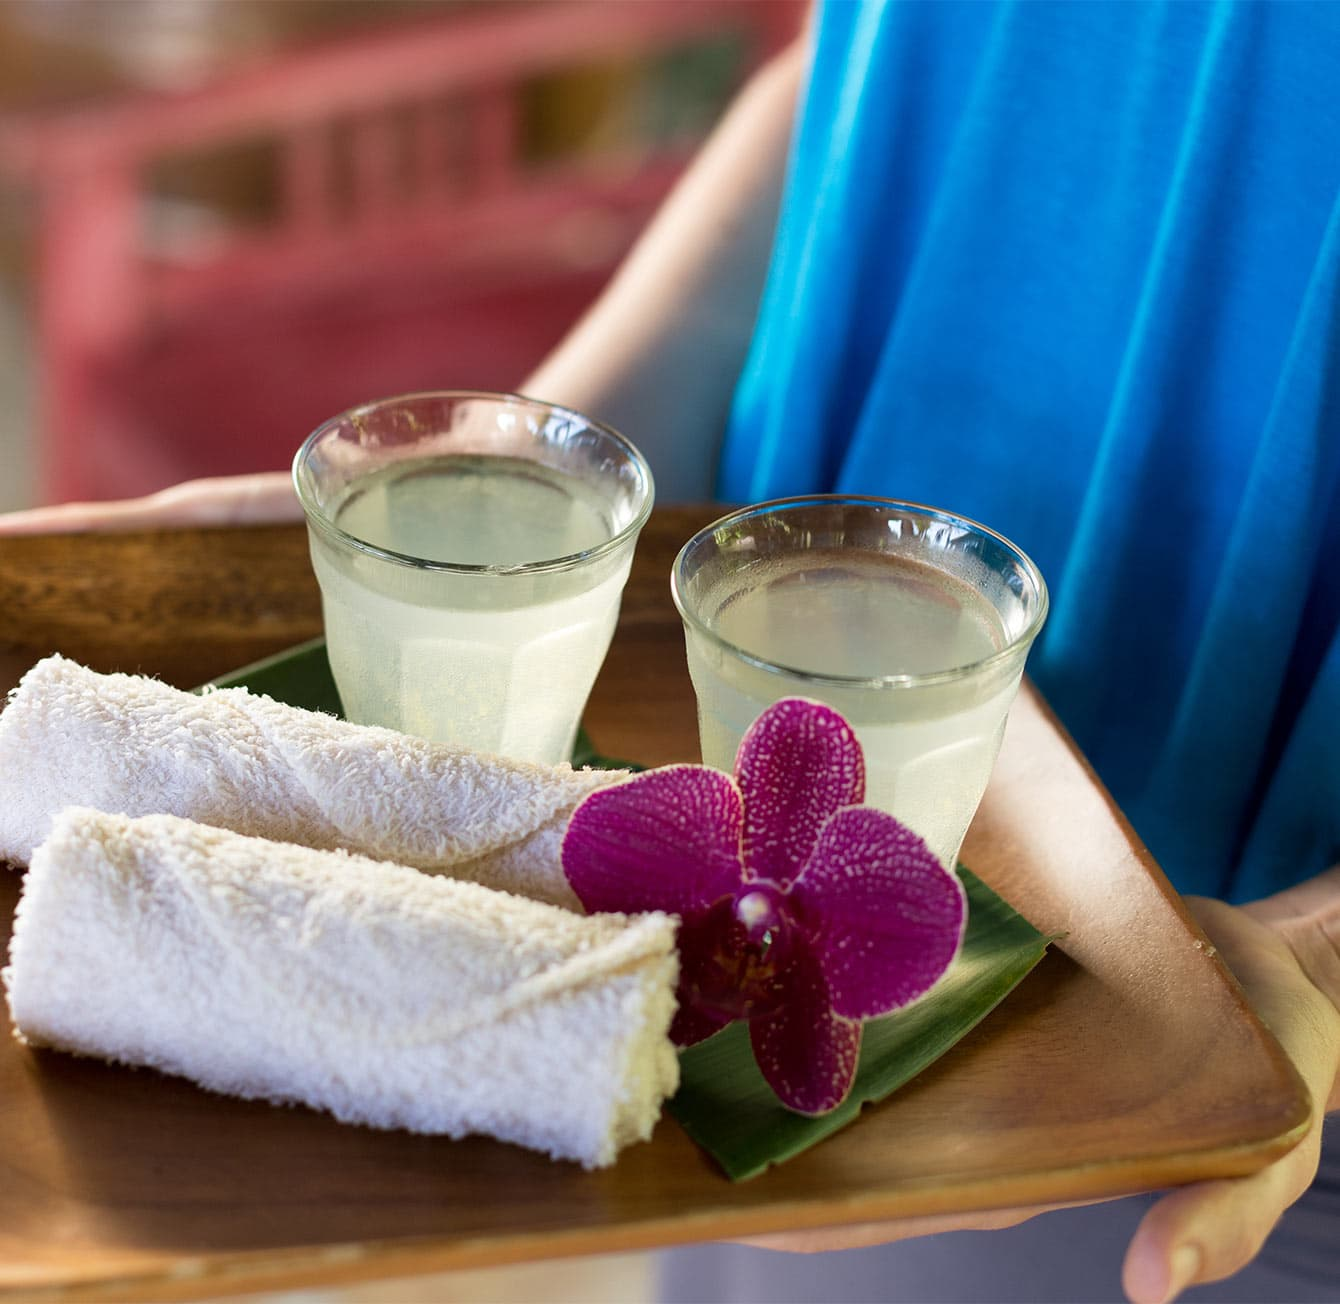 A warm greeting in Hawaii with towels and drinks